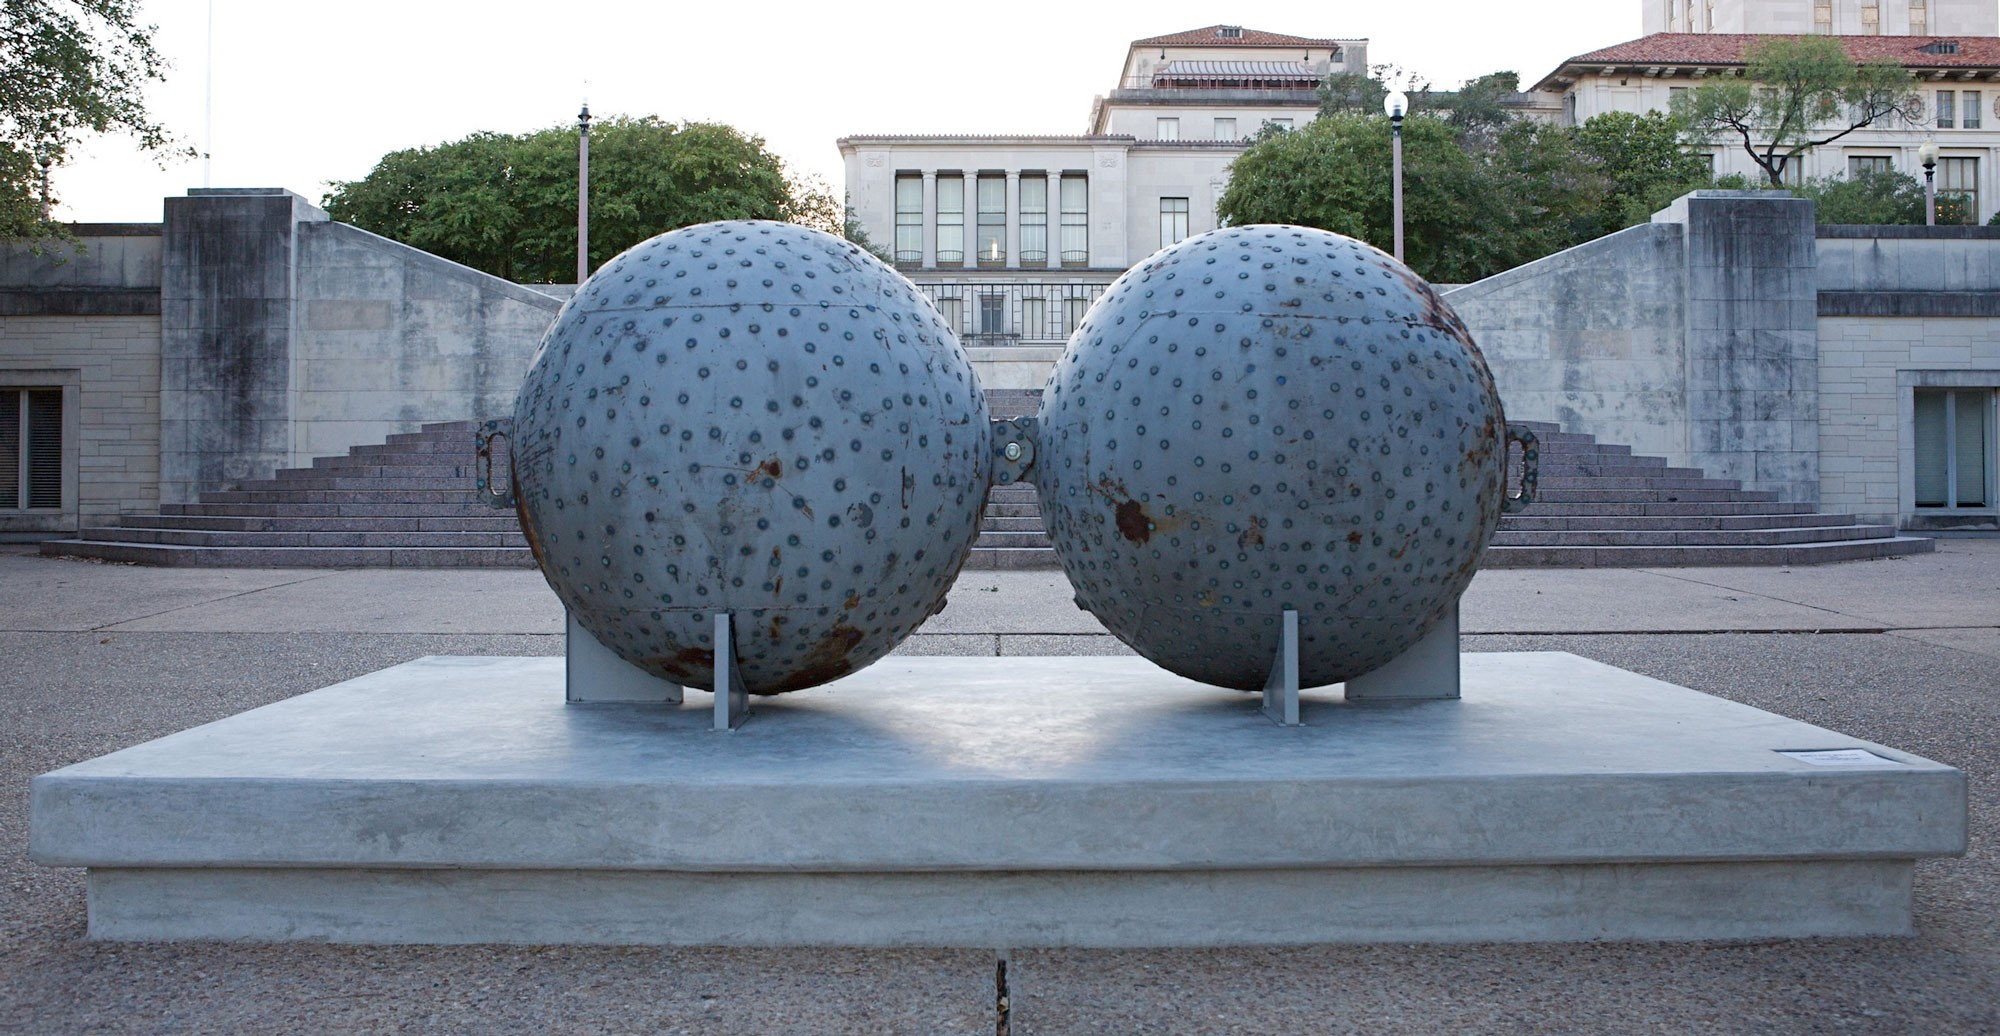 Two large spheres with pennies affixed